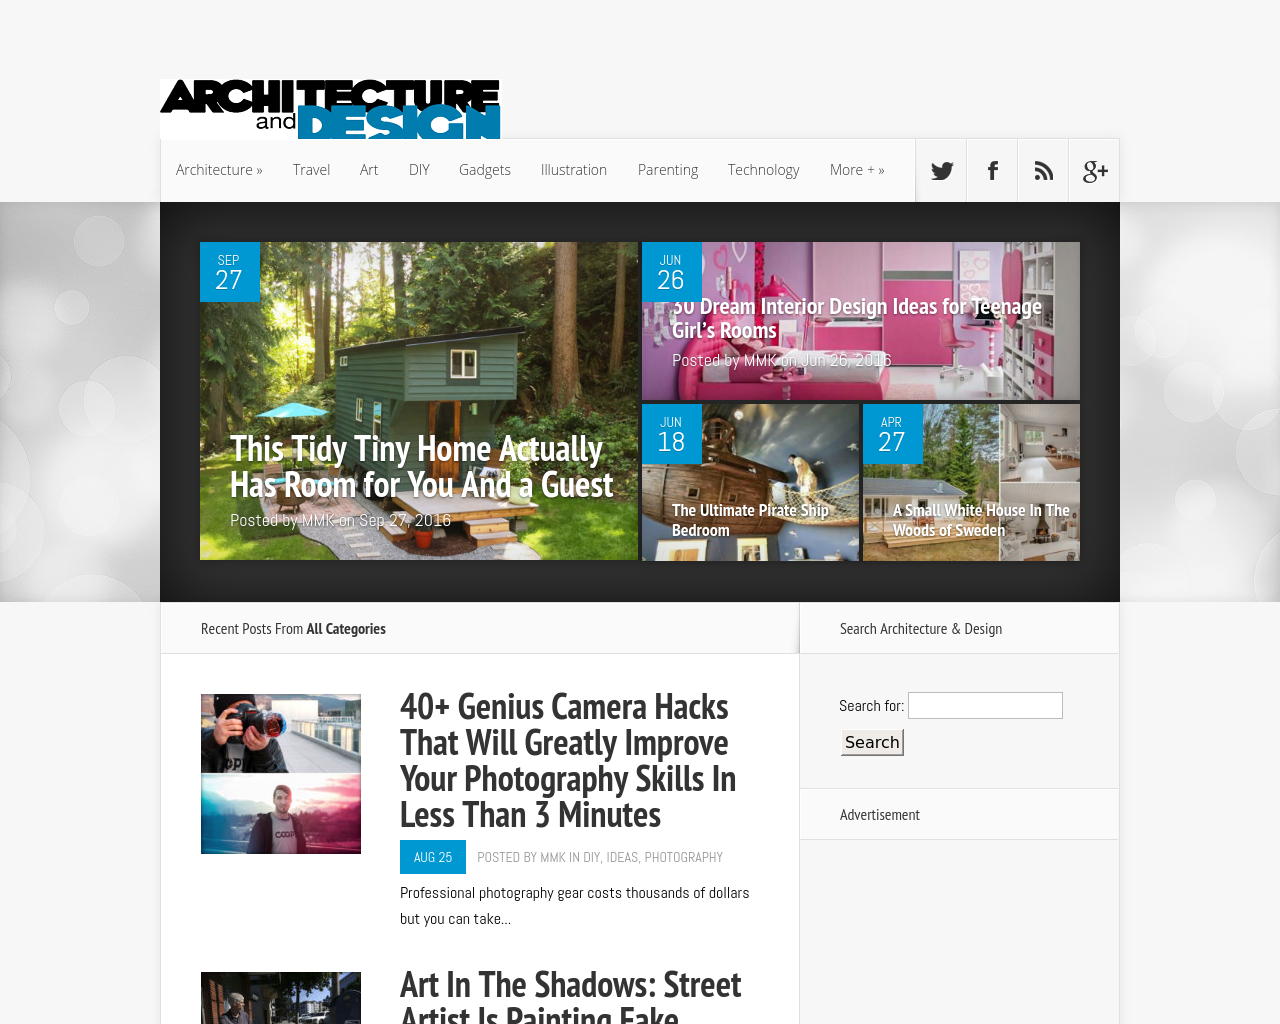 Architecture-And-Design-Advertising-Reviews-Pricing